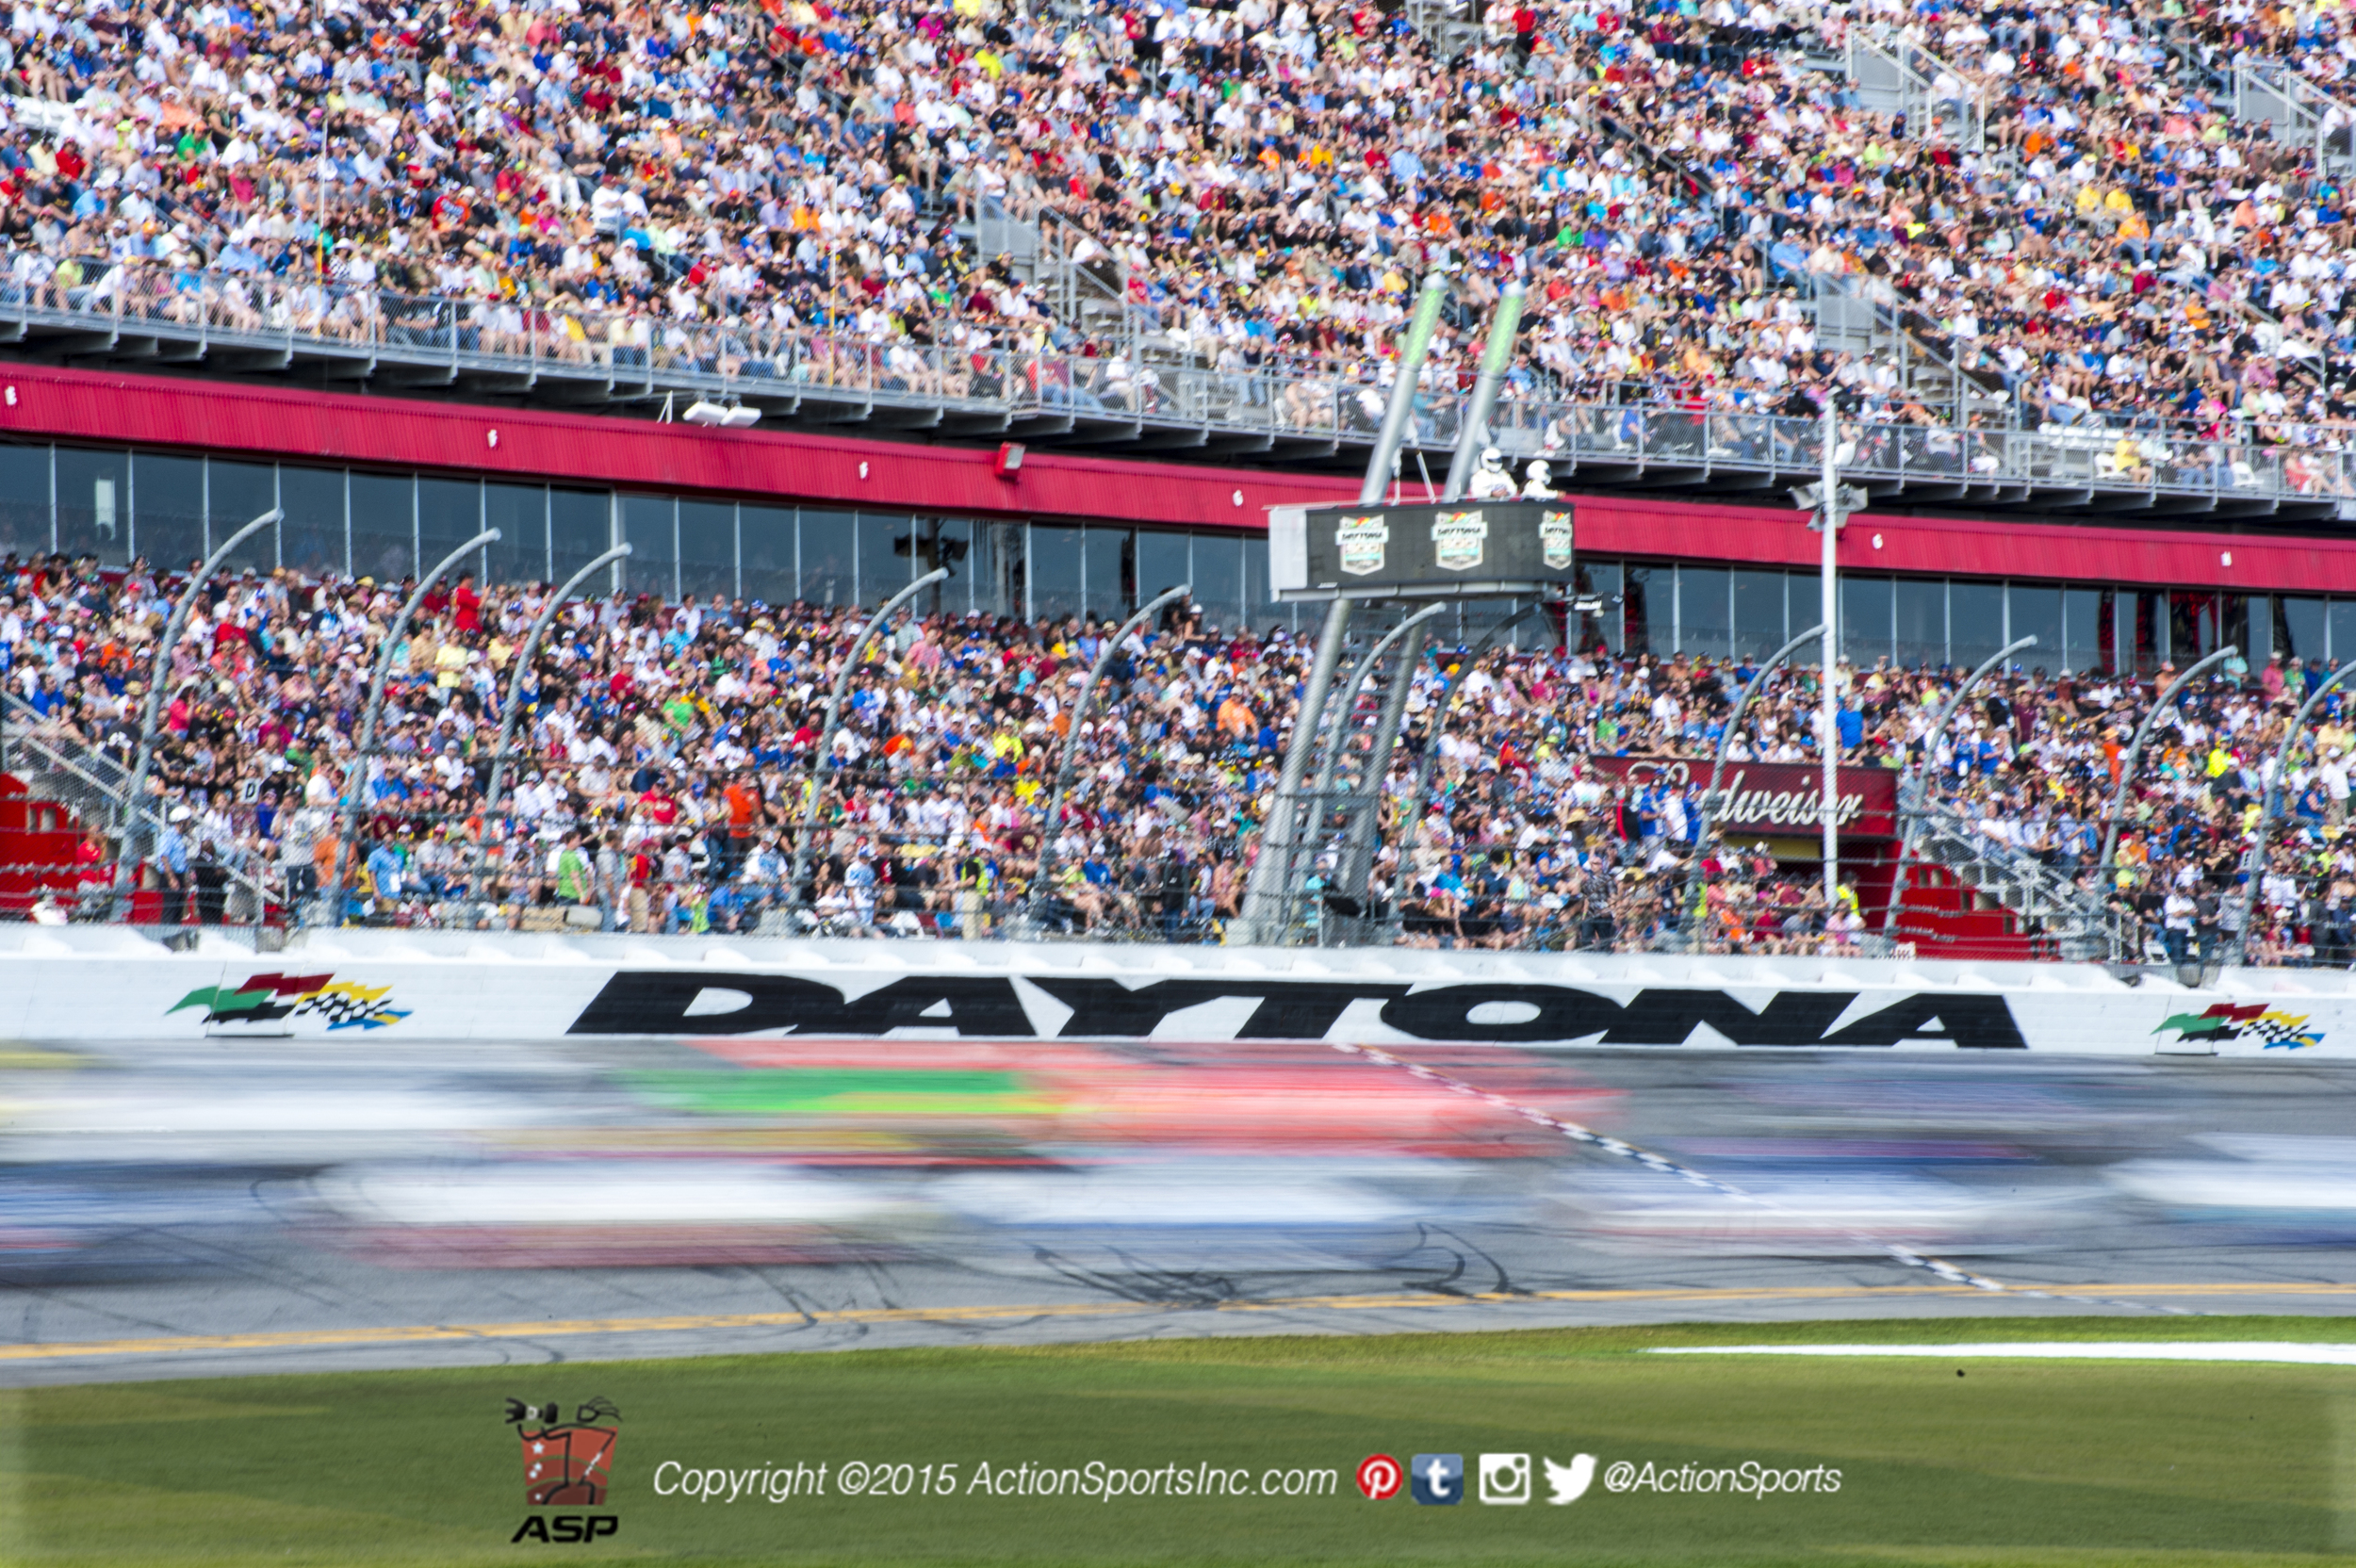 Stock cars race down the front straight of the Daytona International Speedway in a blur during the Daytona 500